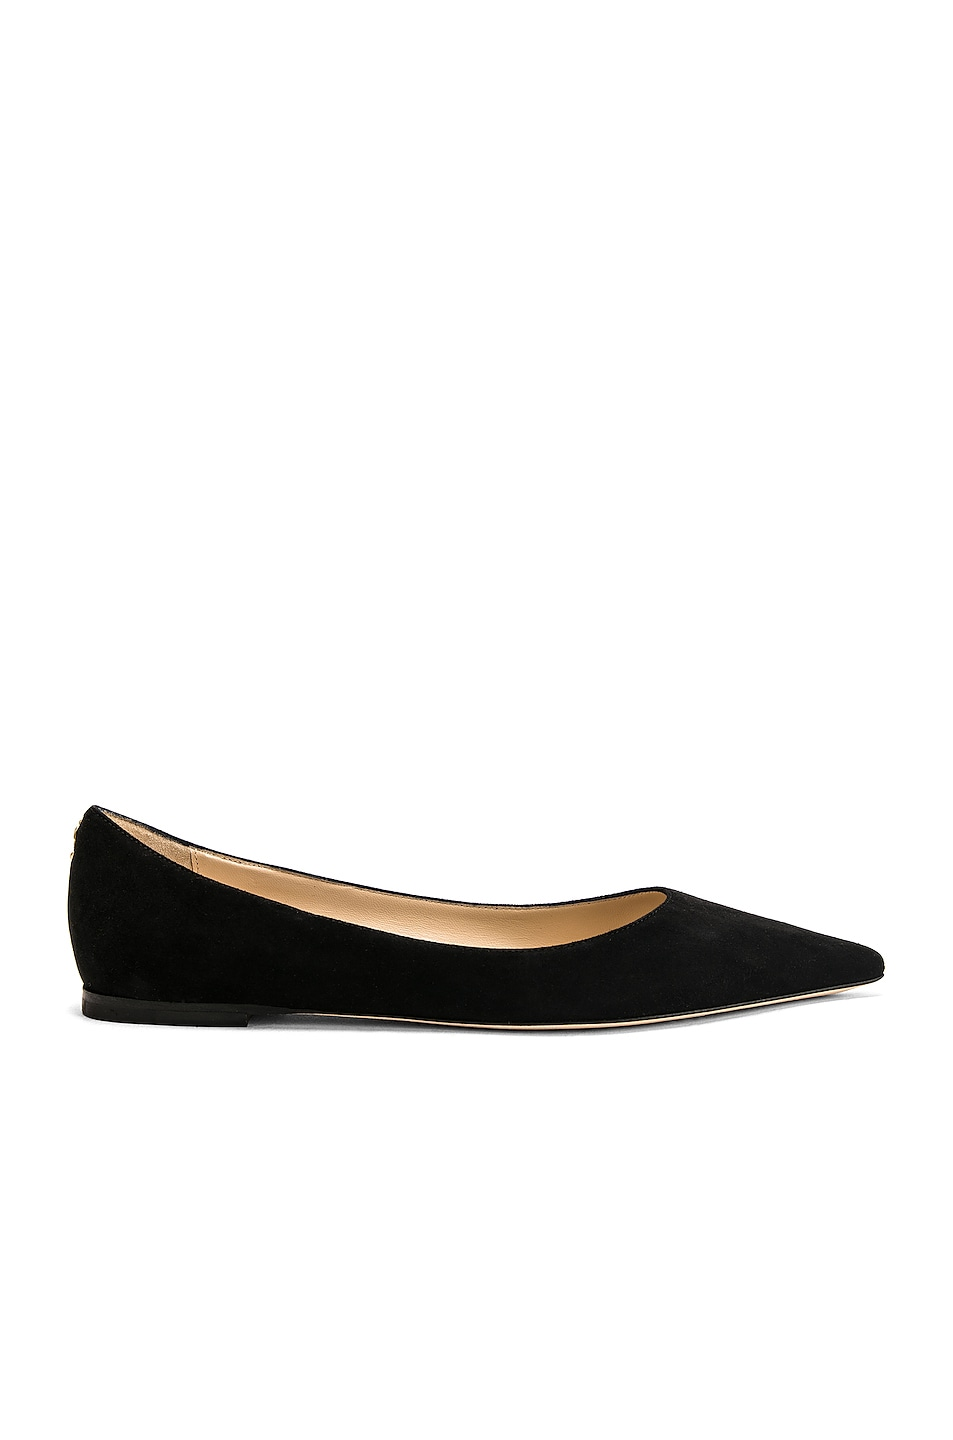 Image 1 of Jimmy Choo Suede Love Flat in Black